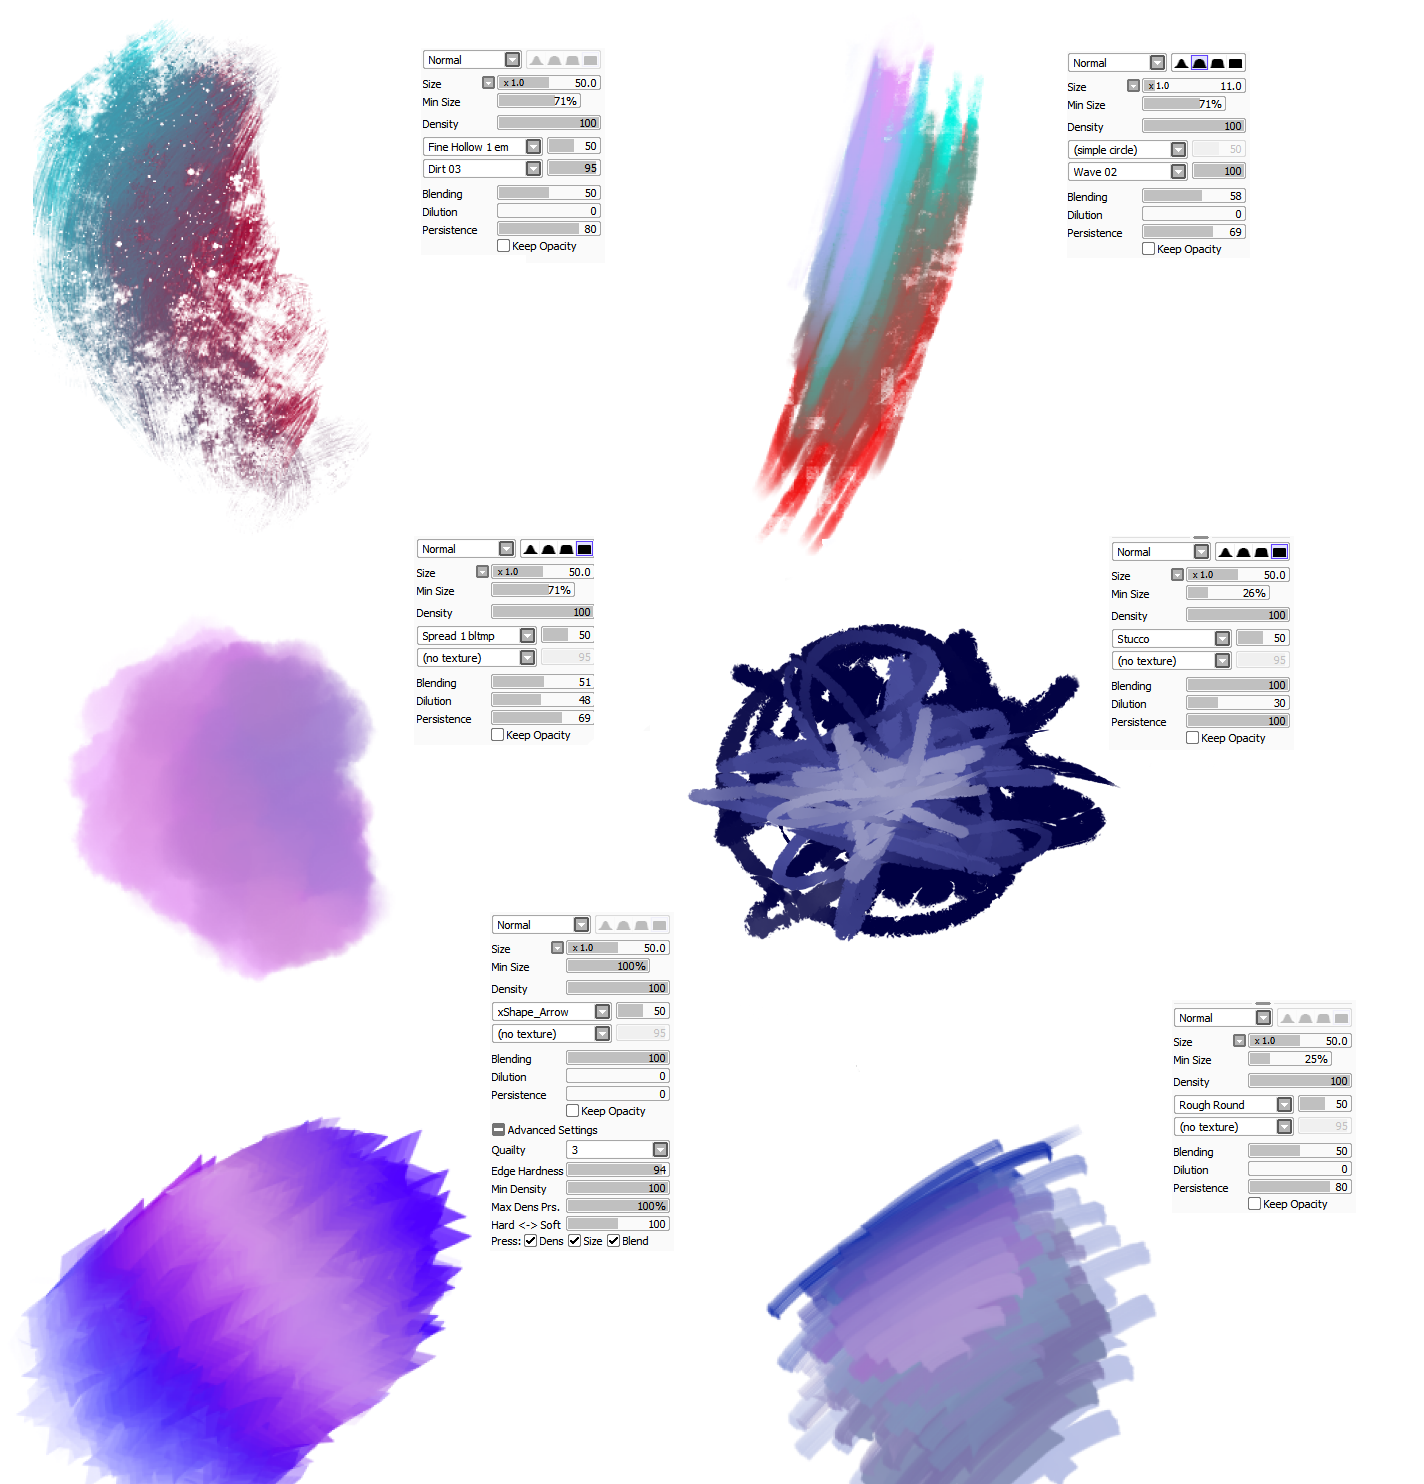 Paint Tool Sai Brushes by CatBrushes. 08 Paint Tool Sai Brushes by CatBrushes on DeviantArt